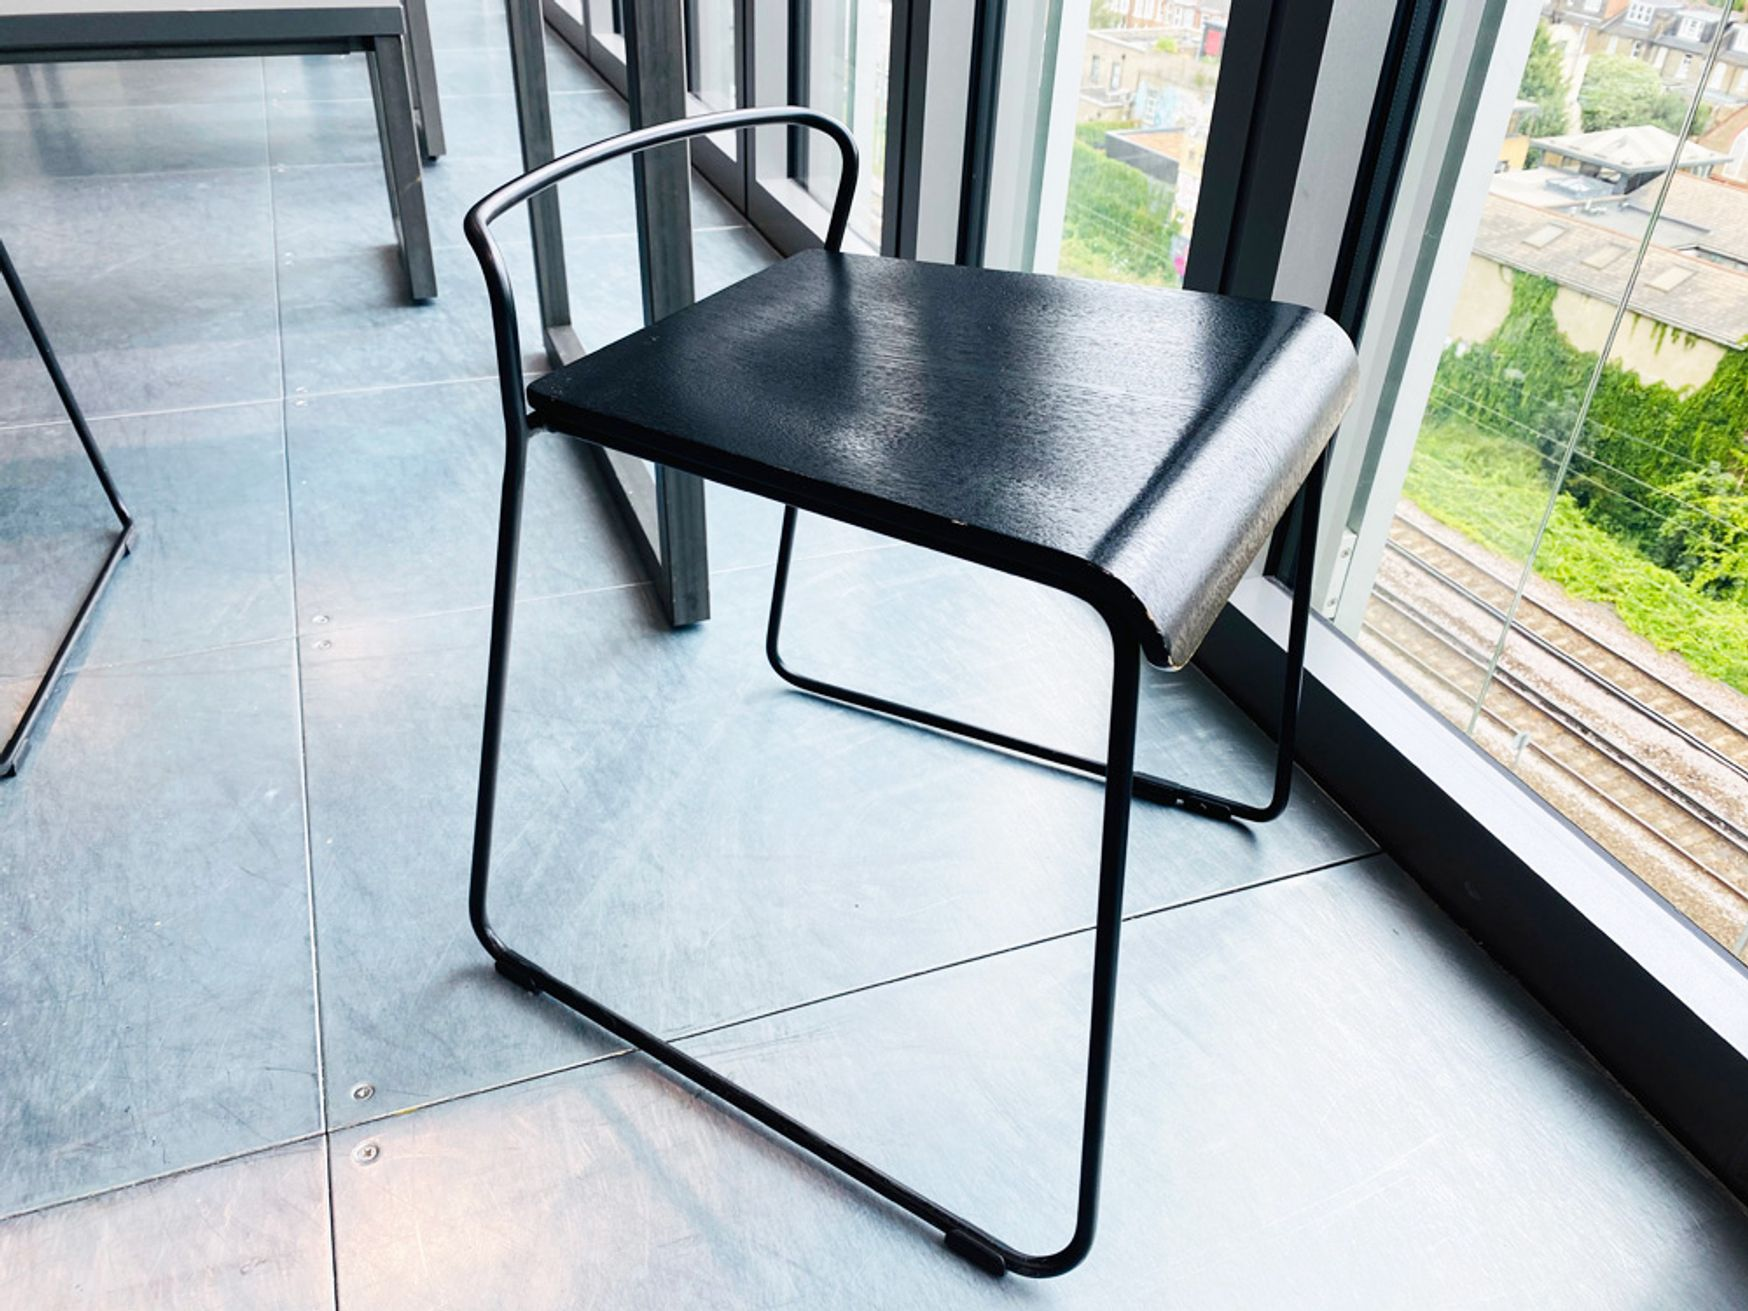 Used 'Social Transit' stools with black ash seat and black wire frame